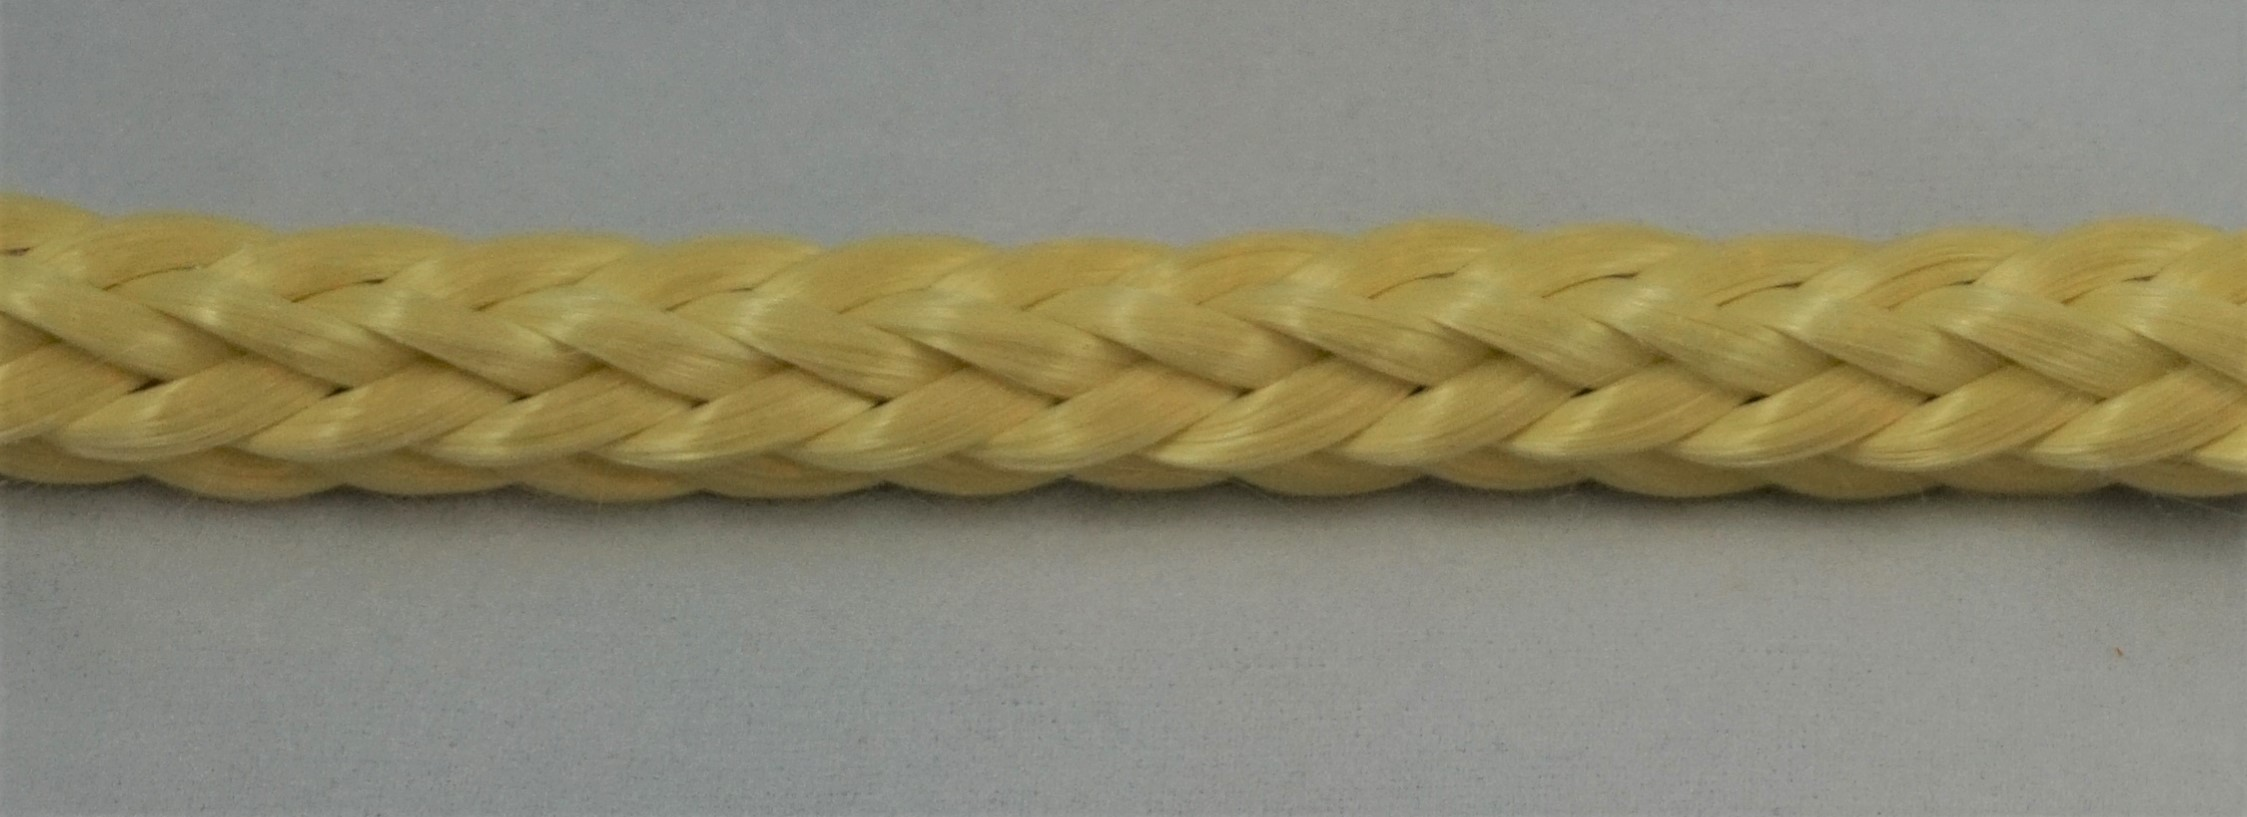 Kevlar Braided Ropes